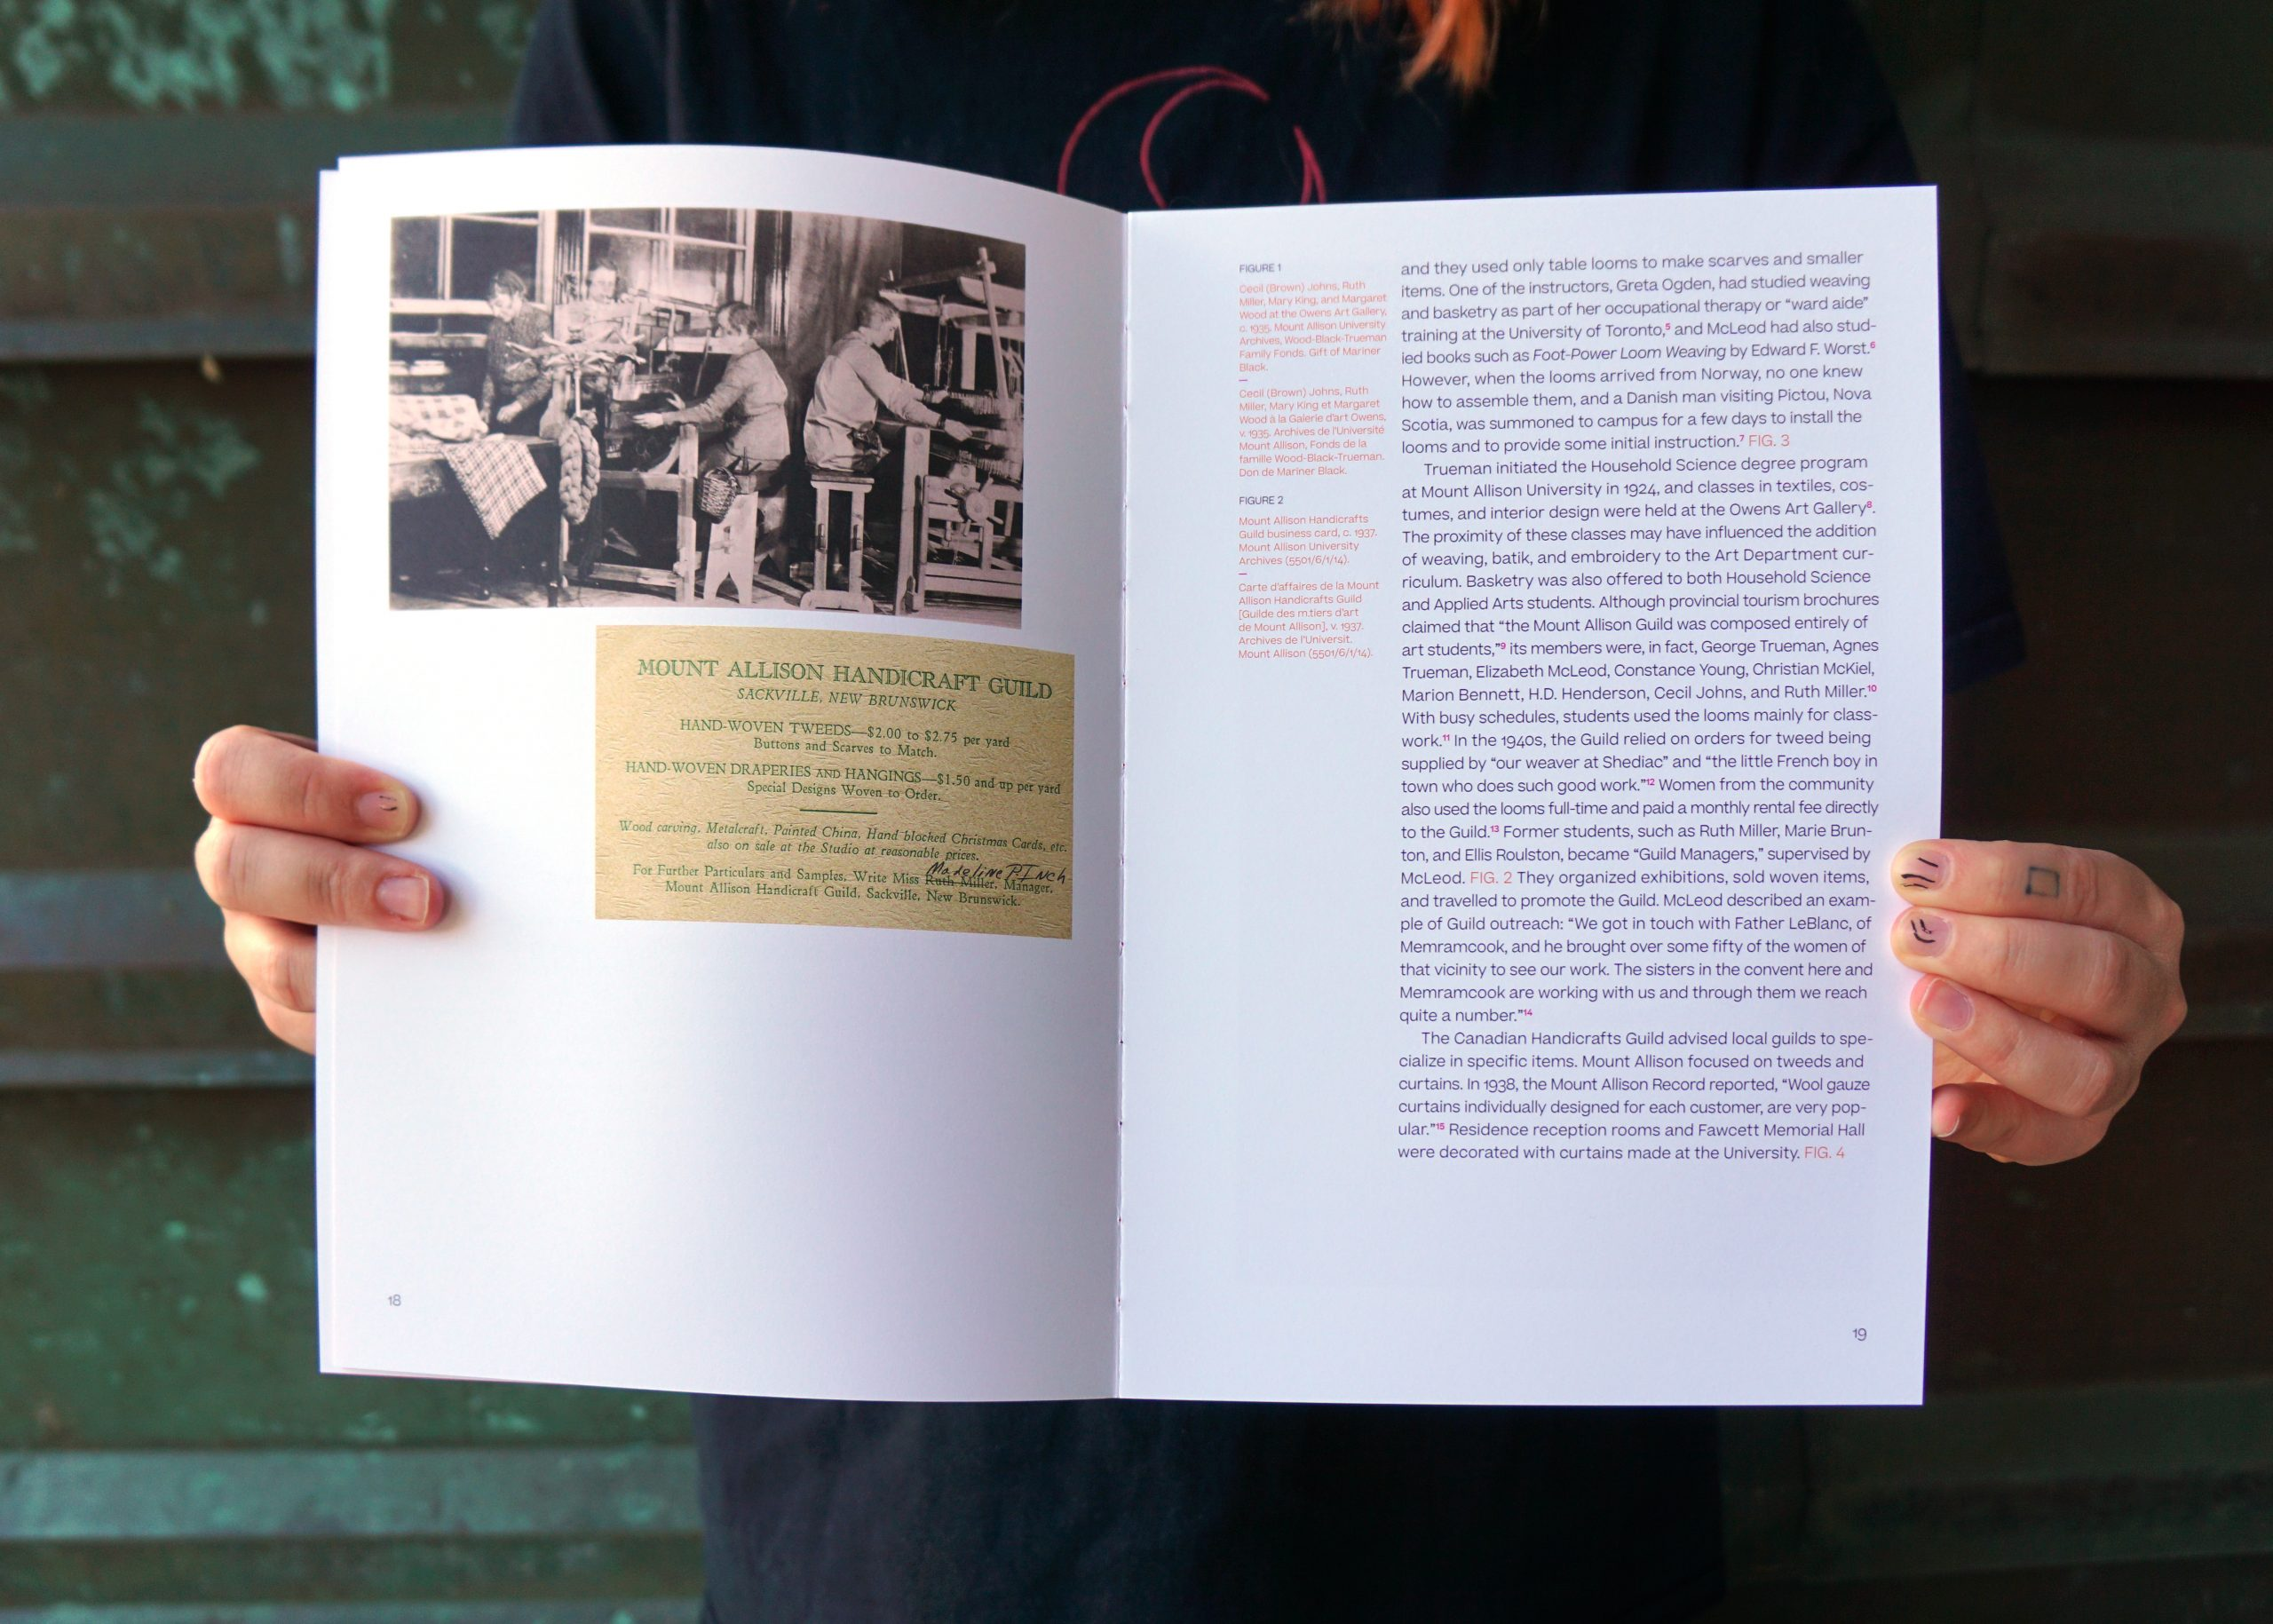 """A pair of hands holds open a book with white pages. On the left, a sepia-toned photo shows women working at looms above an image of a cream business card that reads """"Mount Allison Handicrafts Guild"""". On the right, are three paragraphs of an essay and image captions."""